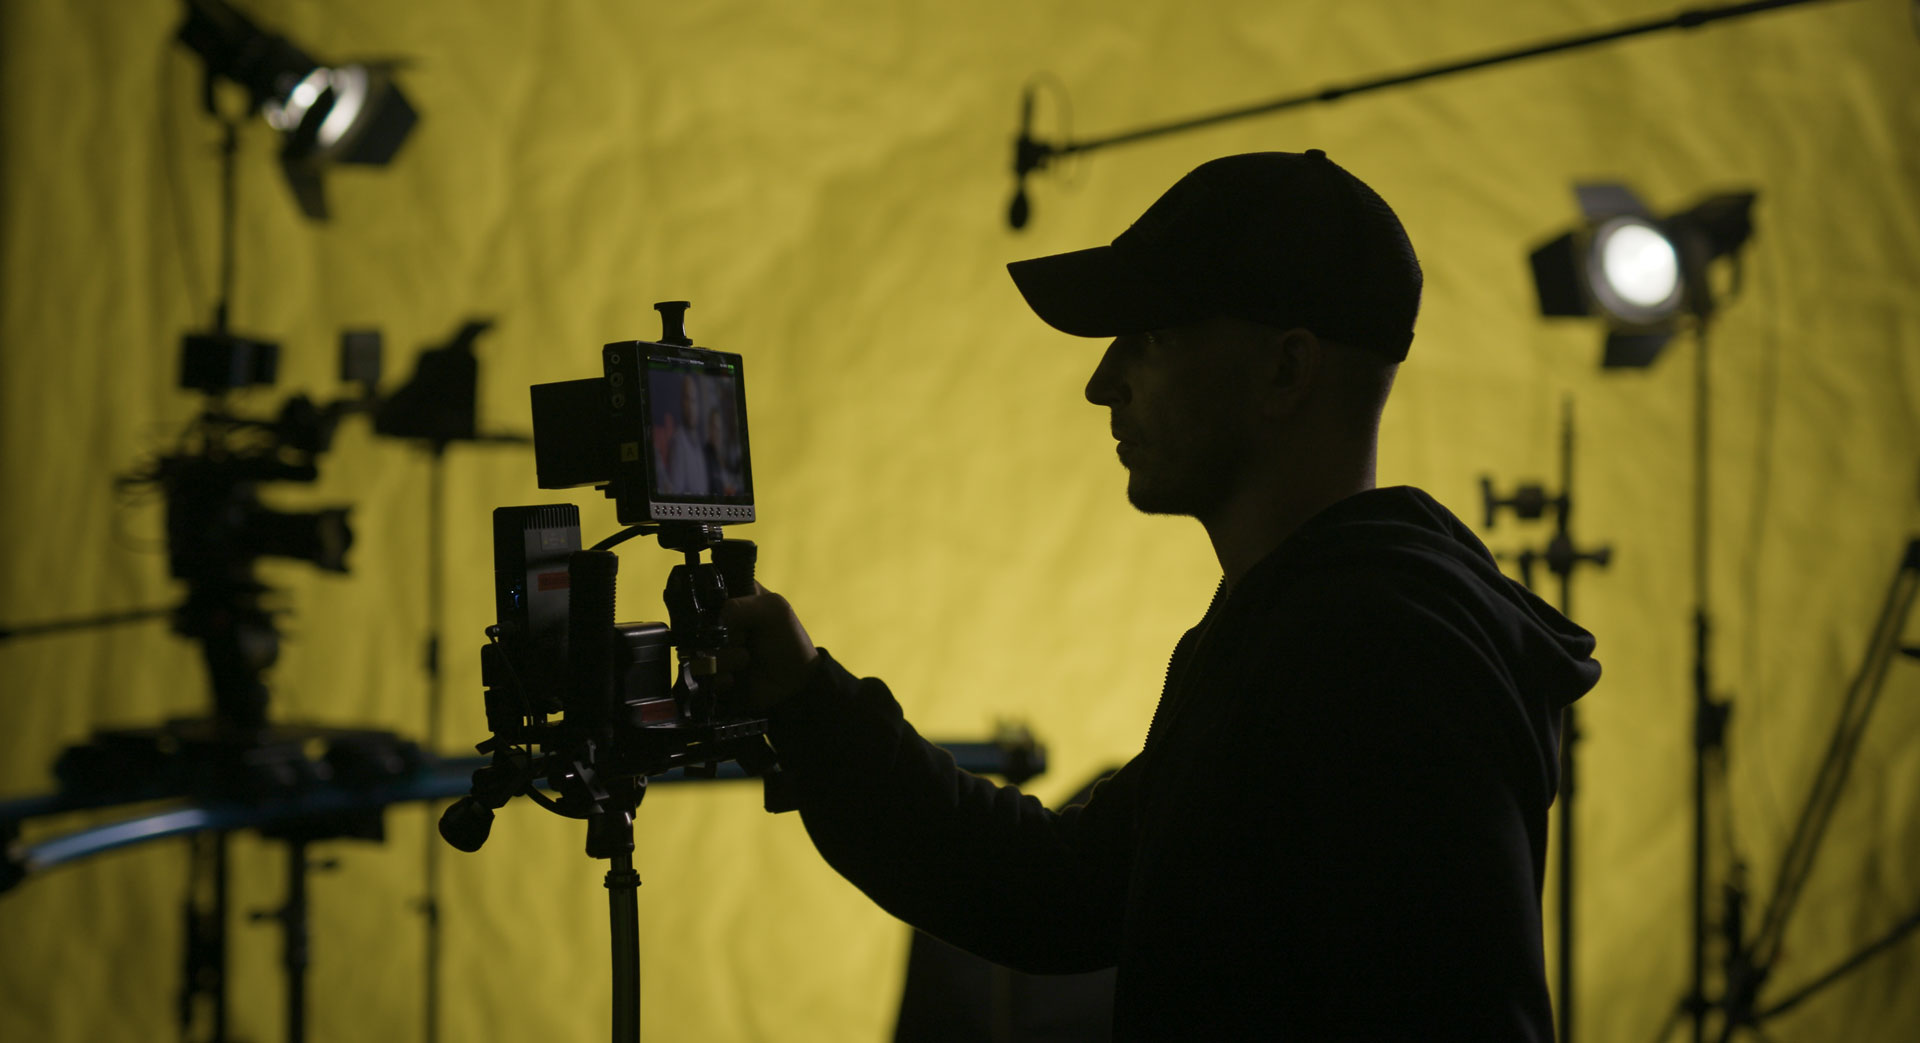 How to Run a Production Company While Living (or Dying) with Stage 4 Cancer